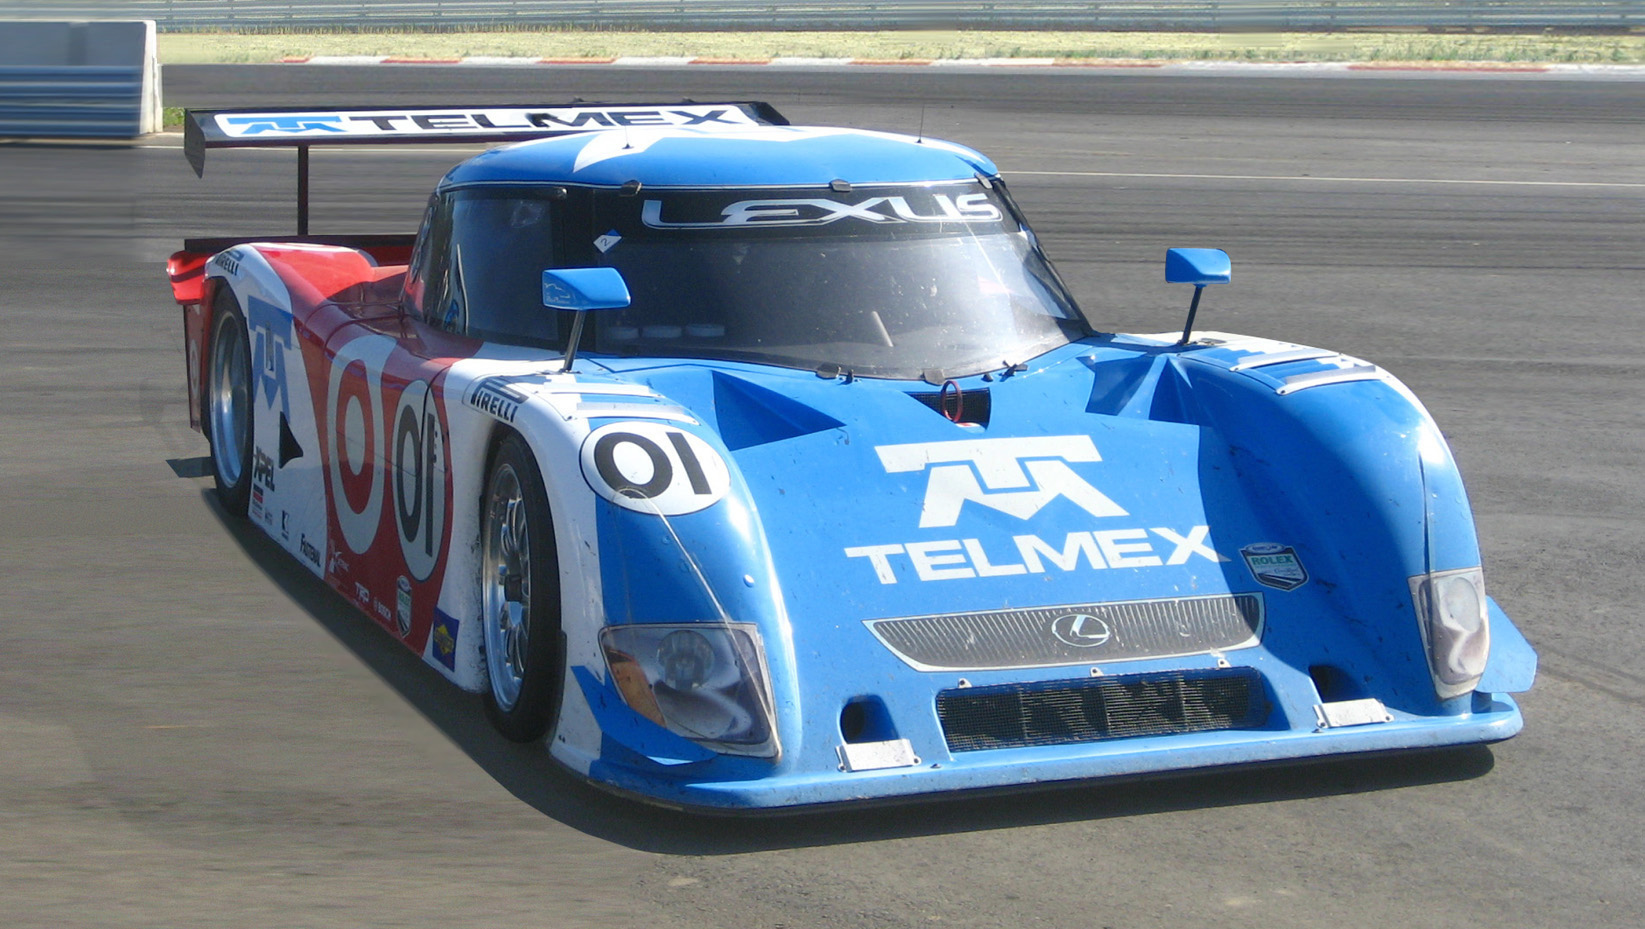 alt=Forward angle view of a racecar on a track; the car is labeled '01', 'Lexus', and 'Telmex'.